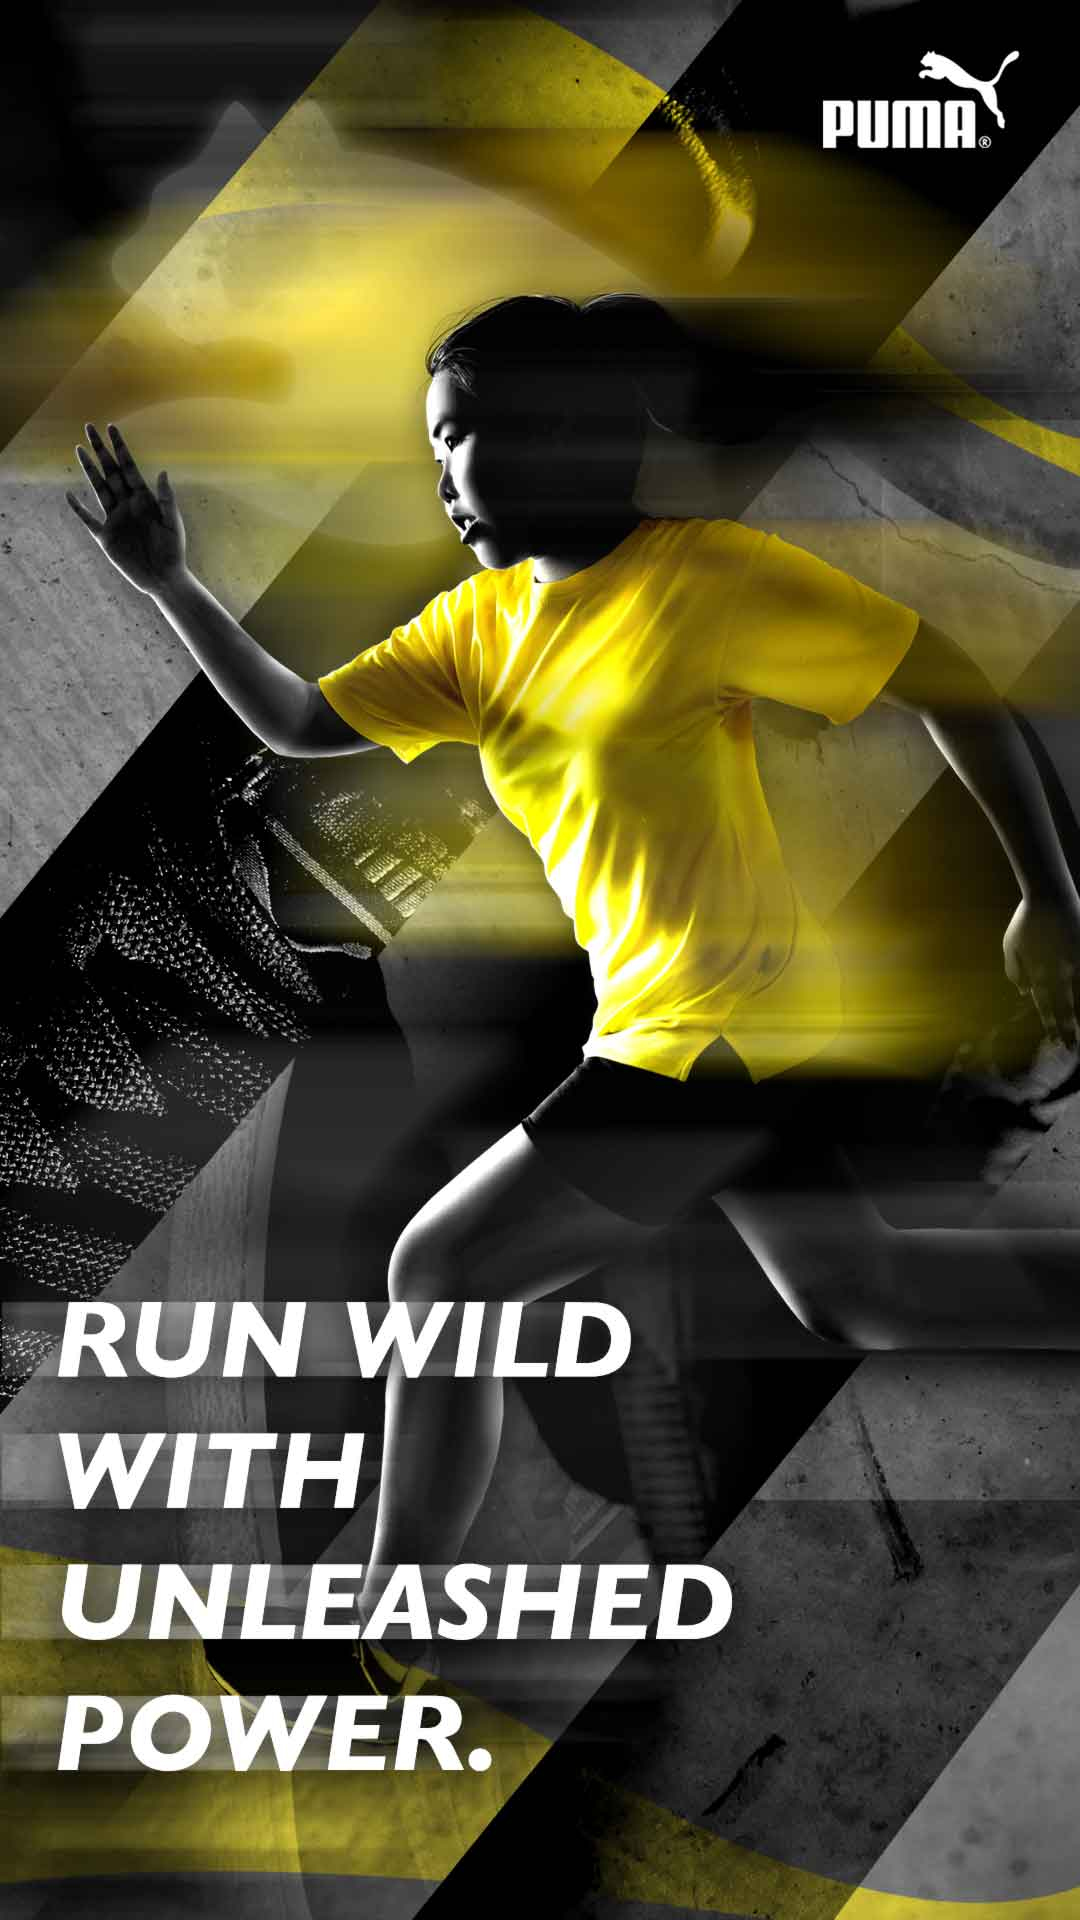 Brand Advertising - PUMA at NTU ADM Portfolio